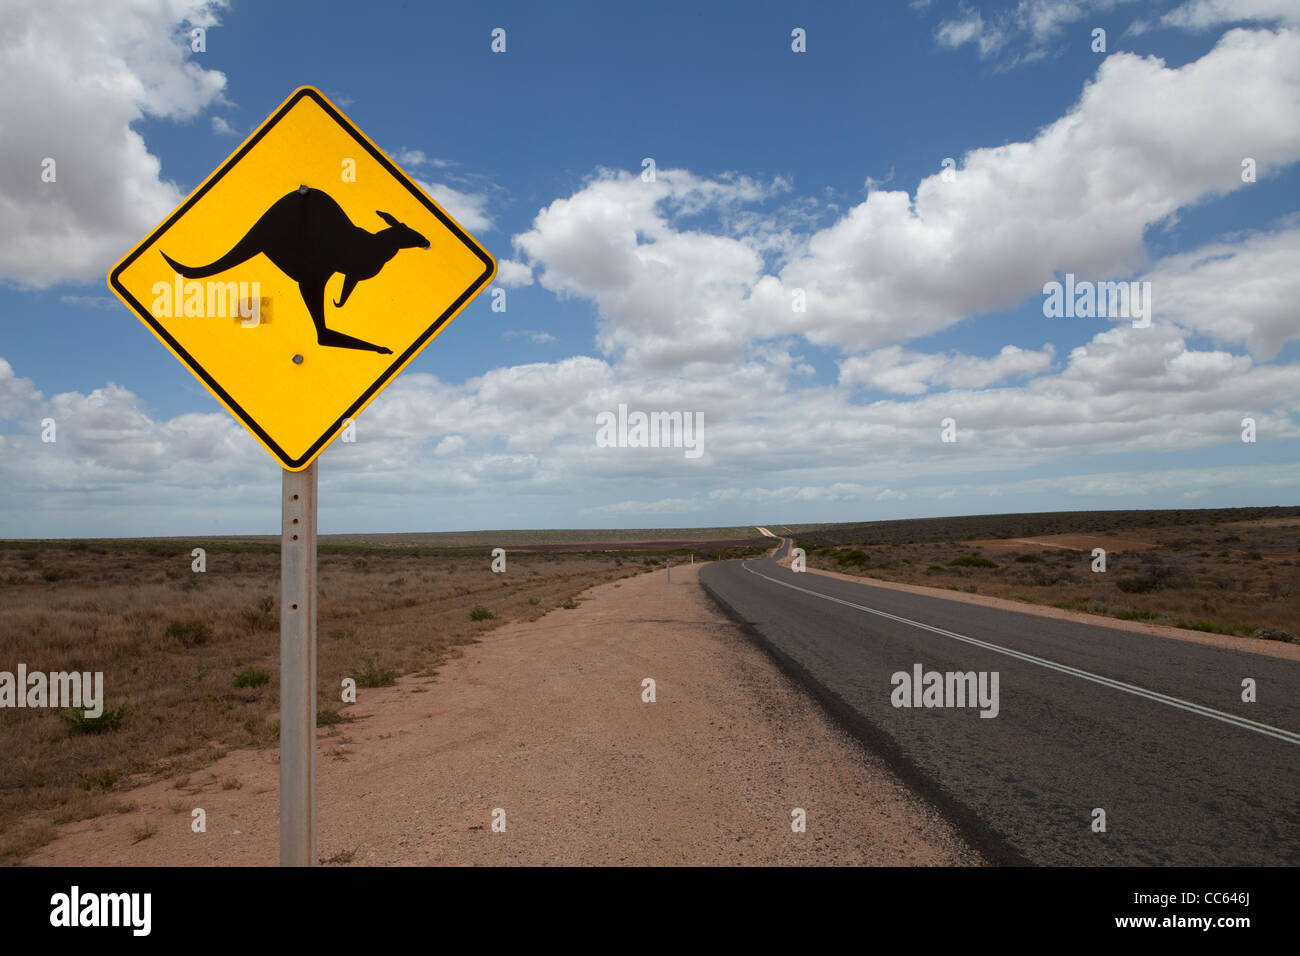 Iconico giallo e nero Canguro cartello stradale su un outback road in Australia Occidentale Immagini Stock